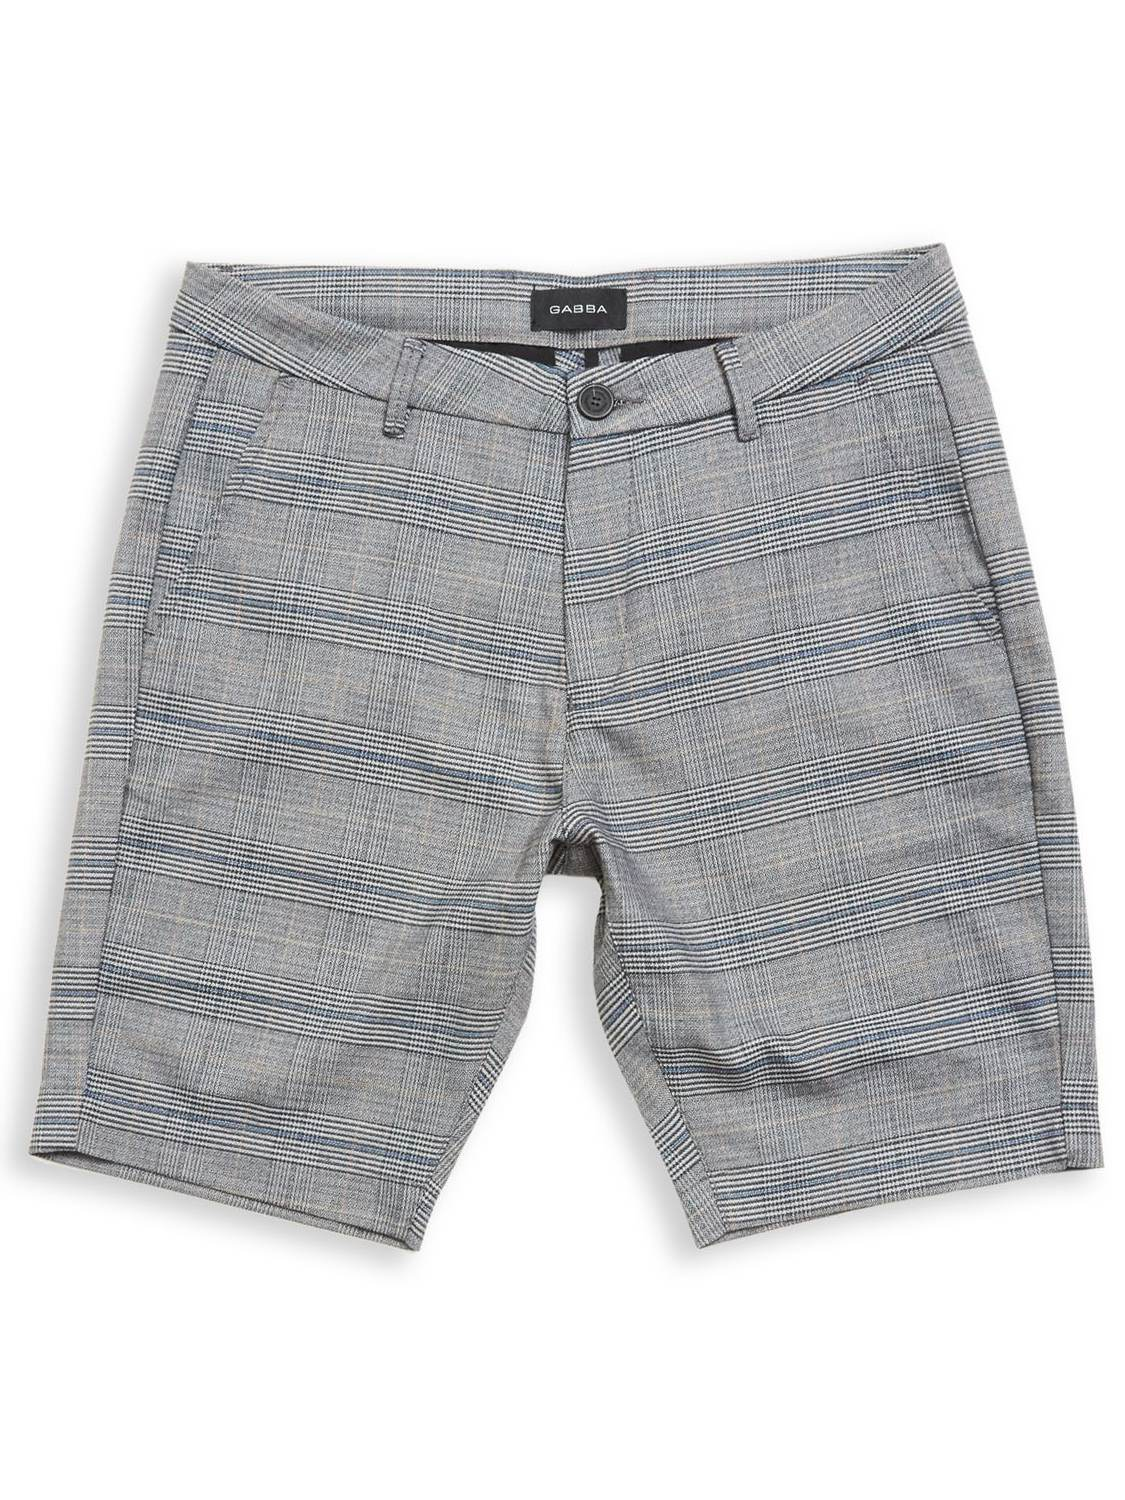 GABBA Jason Chino Shorts English Grey Check | GATE36 Hobro